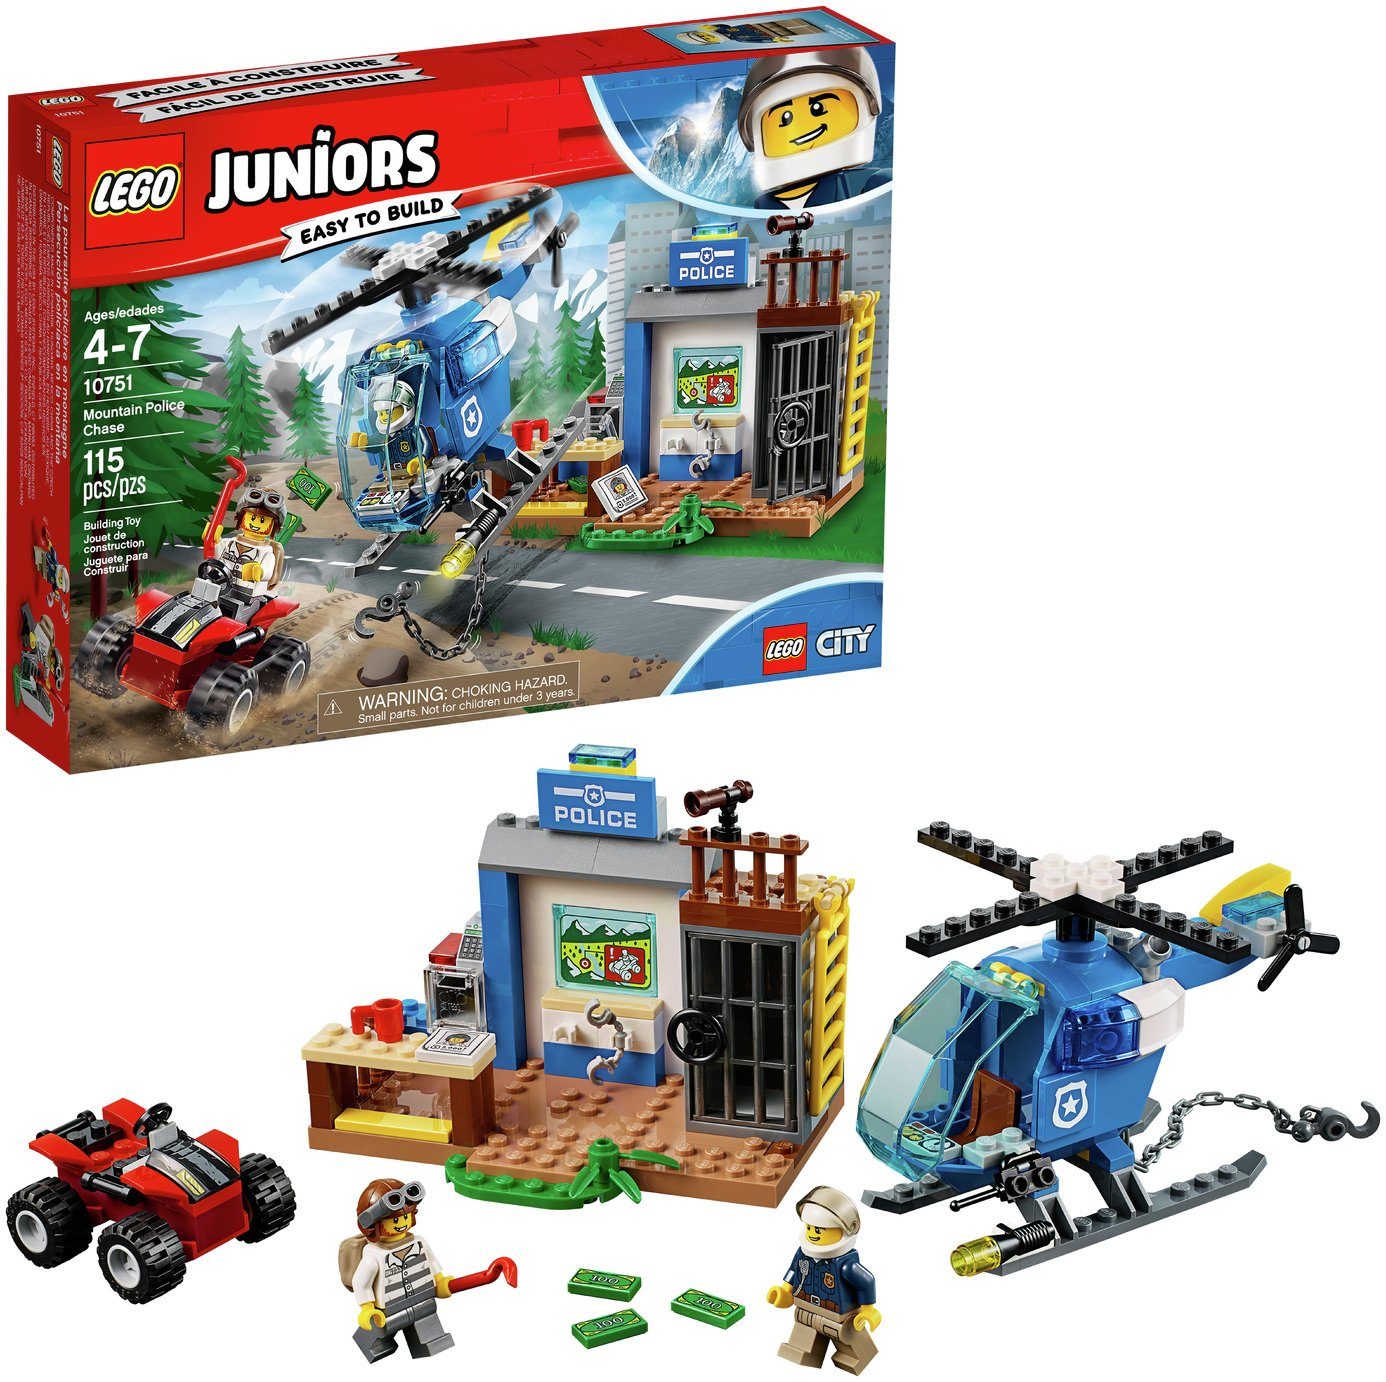 LEGO Juniors Mountain Police Chase Helicopter Toy - 10751